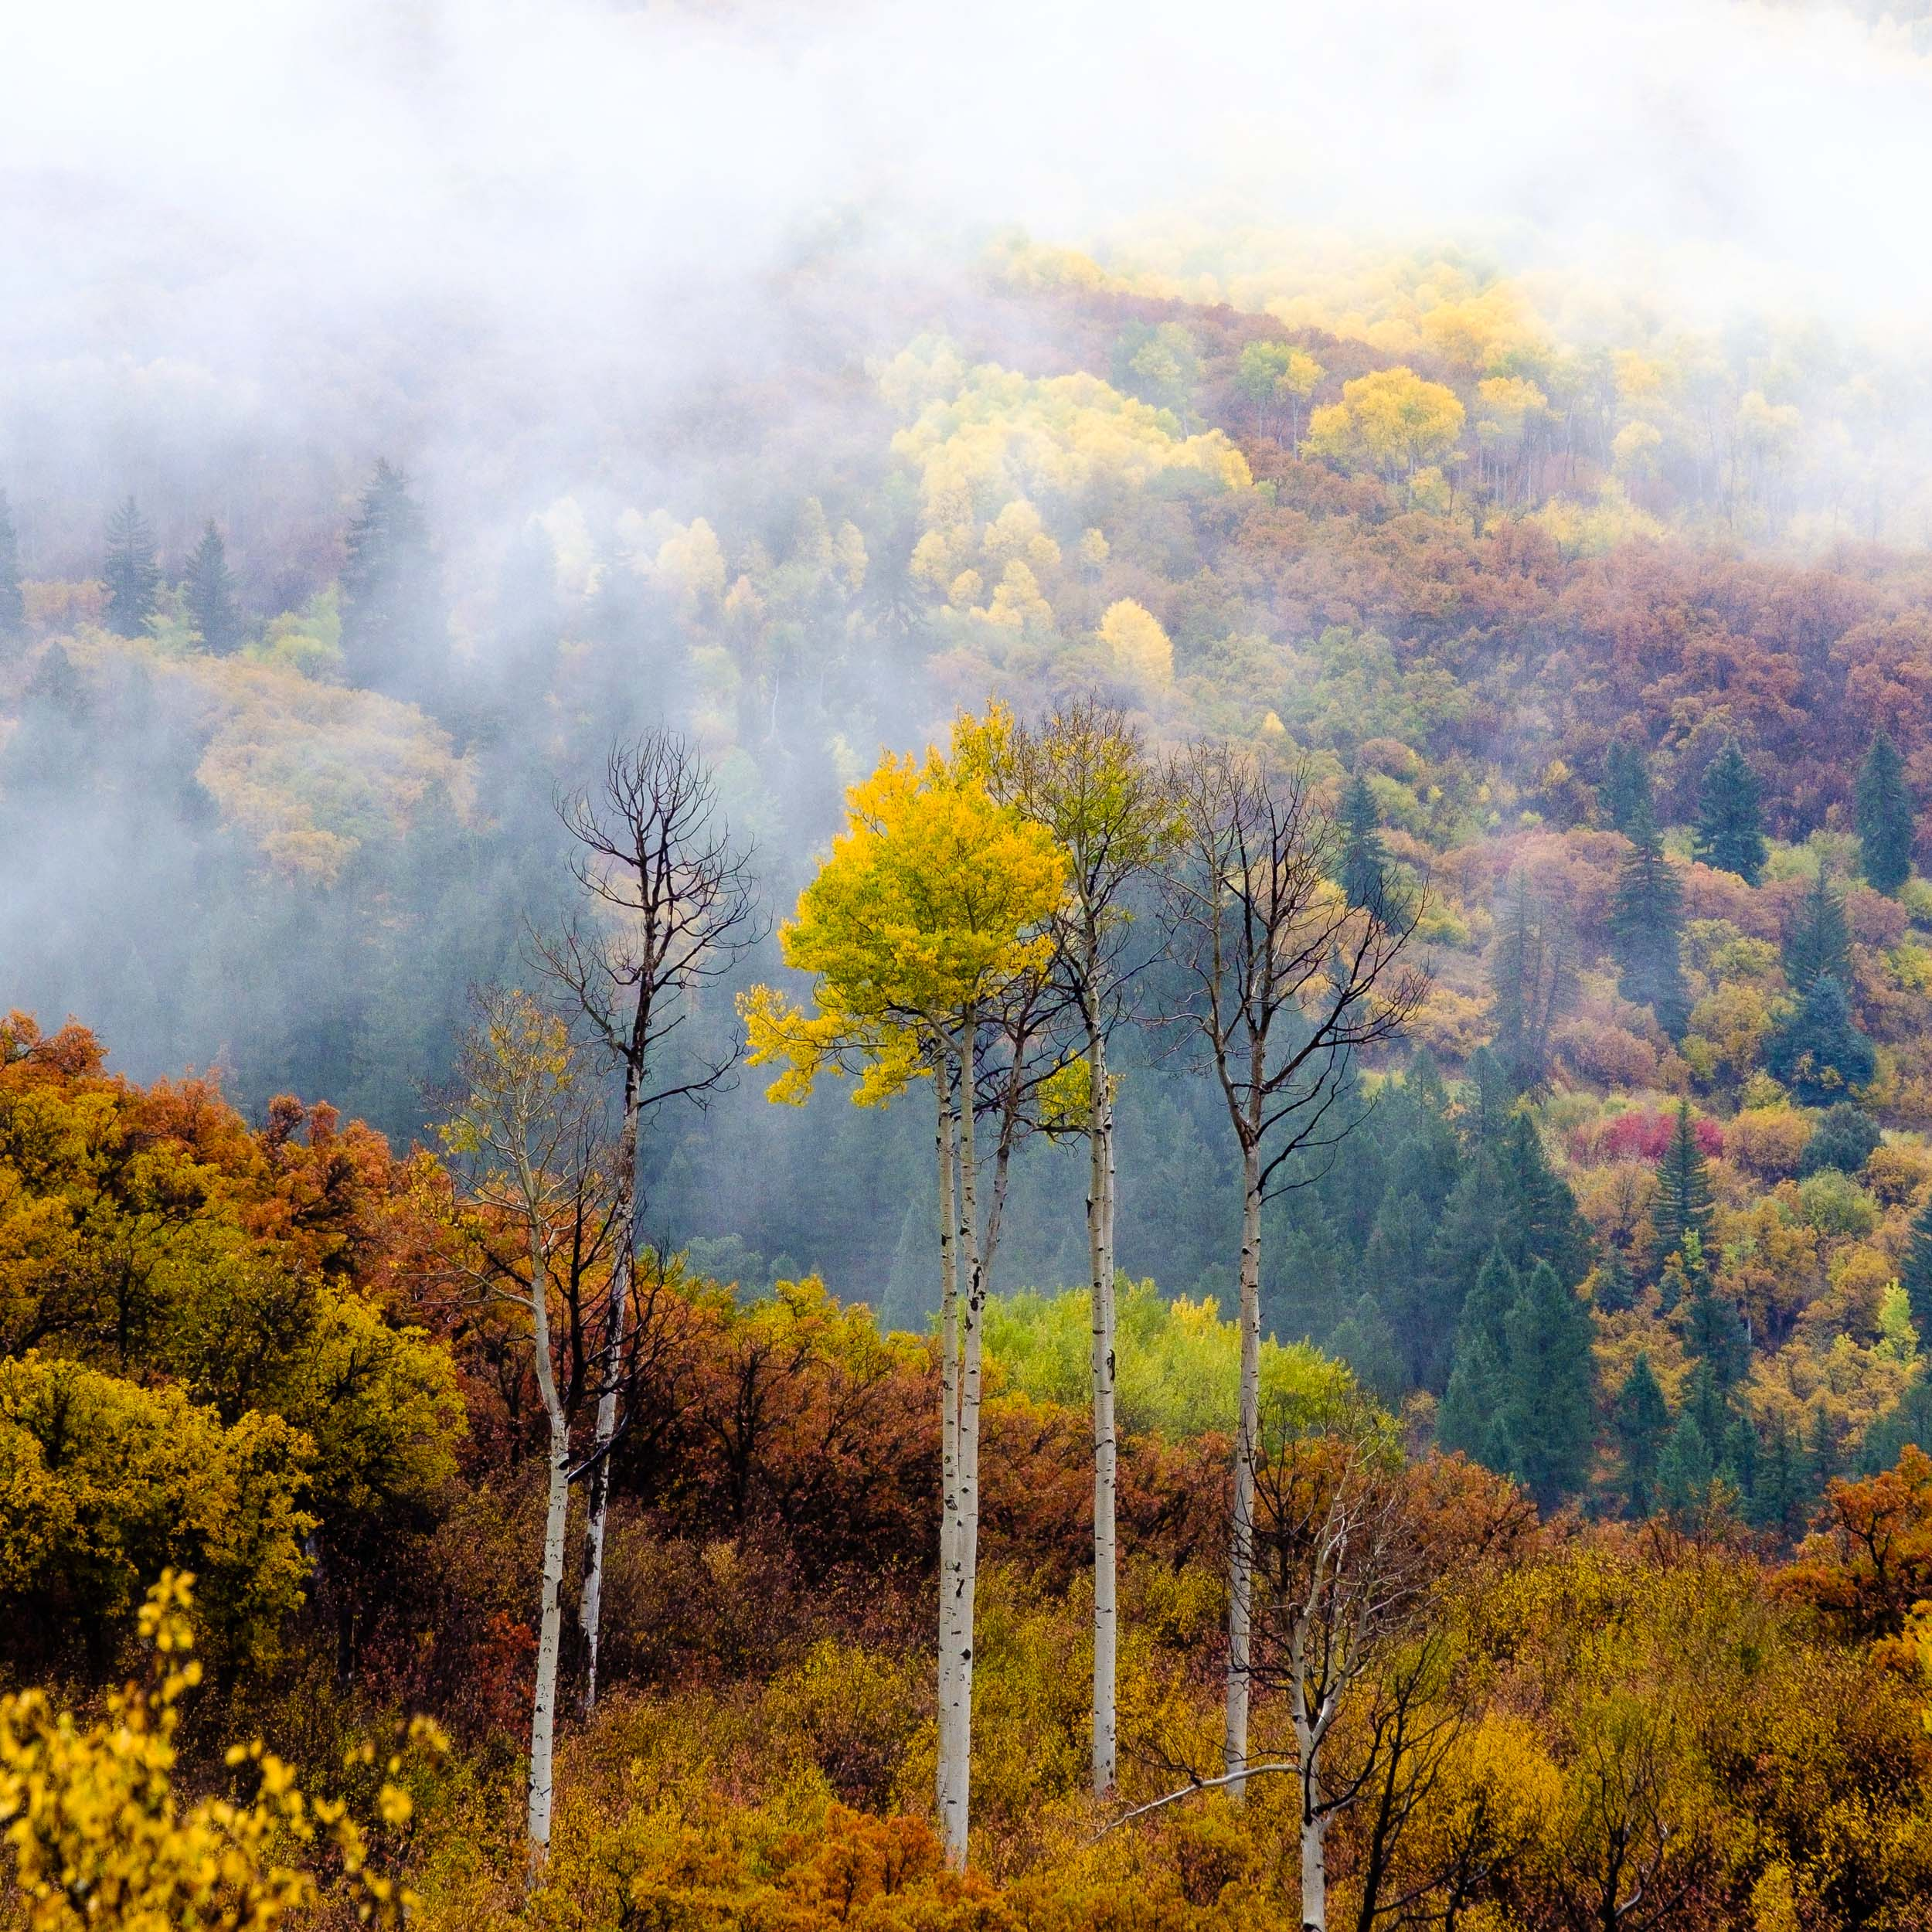 I wasn't sure if I was going to get a break in the rain and fog along Kebler Pass. I could see some color peaking through so Reg and I sat in the car for a while hoping the rain would let up and the clouds would clear. We got our wish and I captured this image as the fog let up around this single lollipop aspen stood out showing it's amazing color!